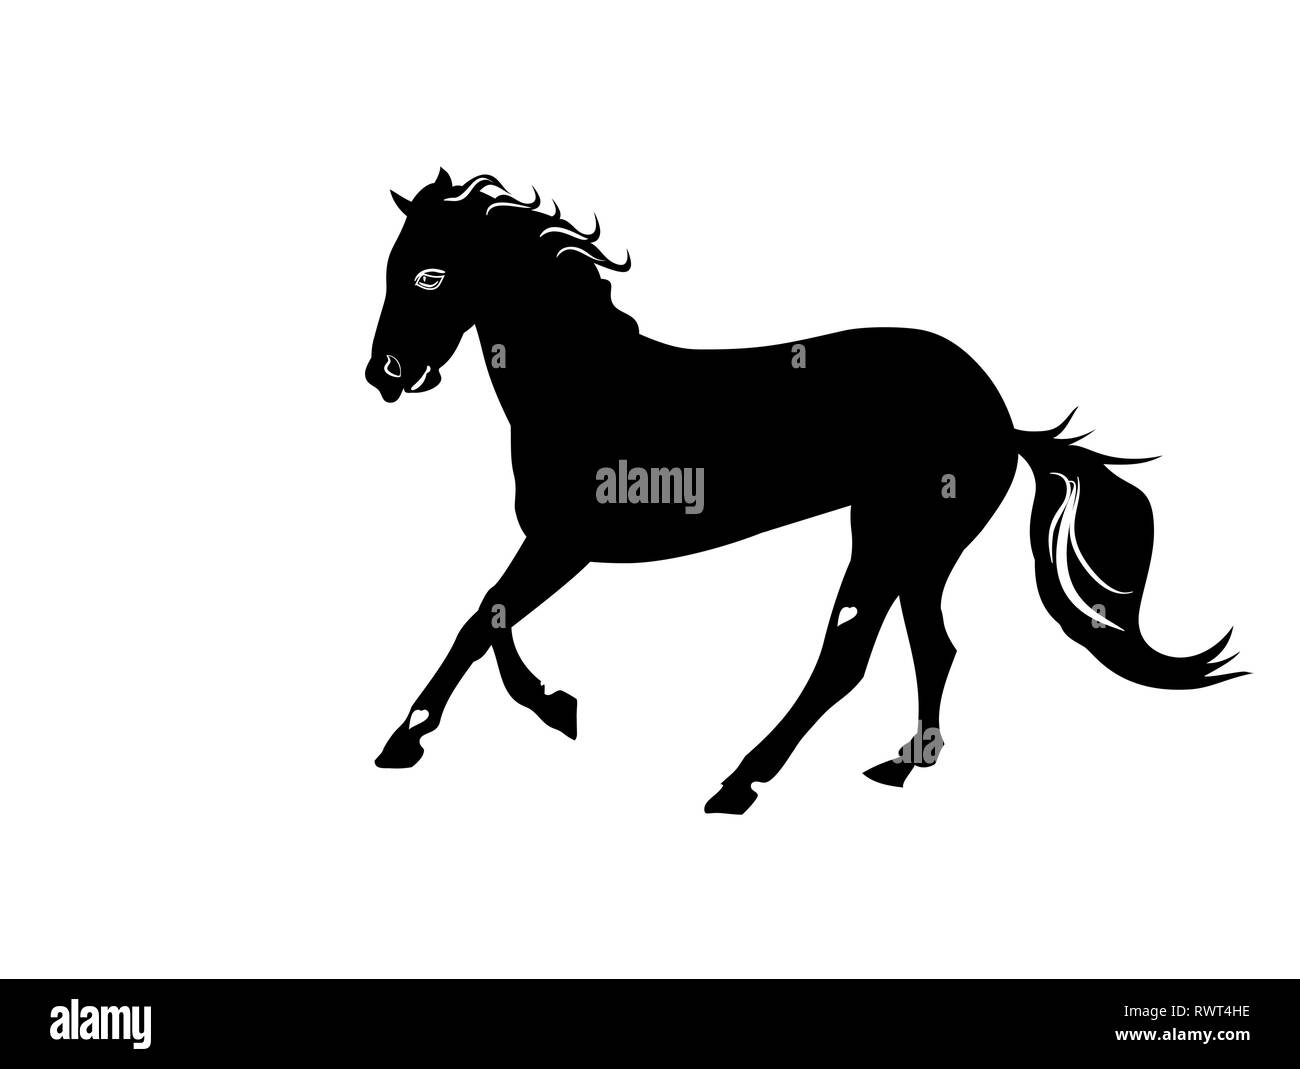 Silhouette Black And White Beautiful Arabian Horse With Developing Mane Stock Vector Image Art Alamy